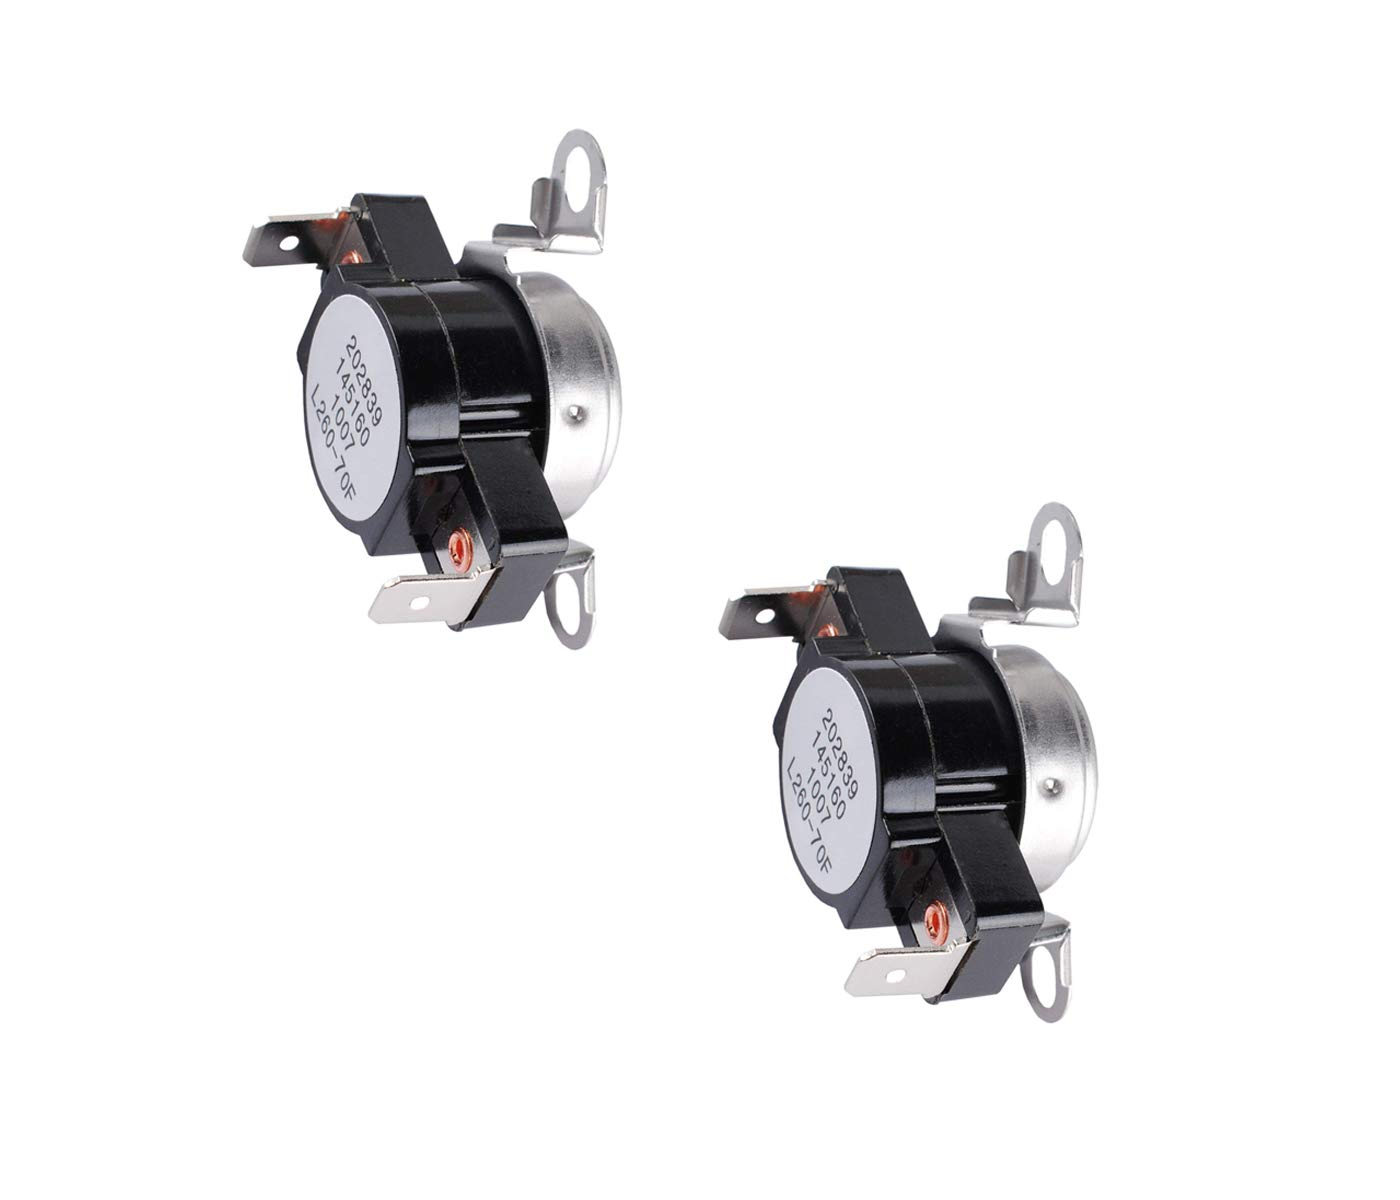 AP2131477 Dryer High-Limit Thermostat Compatible with Frigidaire Clothes Dryer,3204267 Safety Thermostat Replace 508516 AH446428 EA446428 PS446428 by Katofa Pack of 2